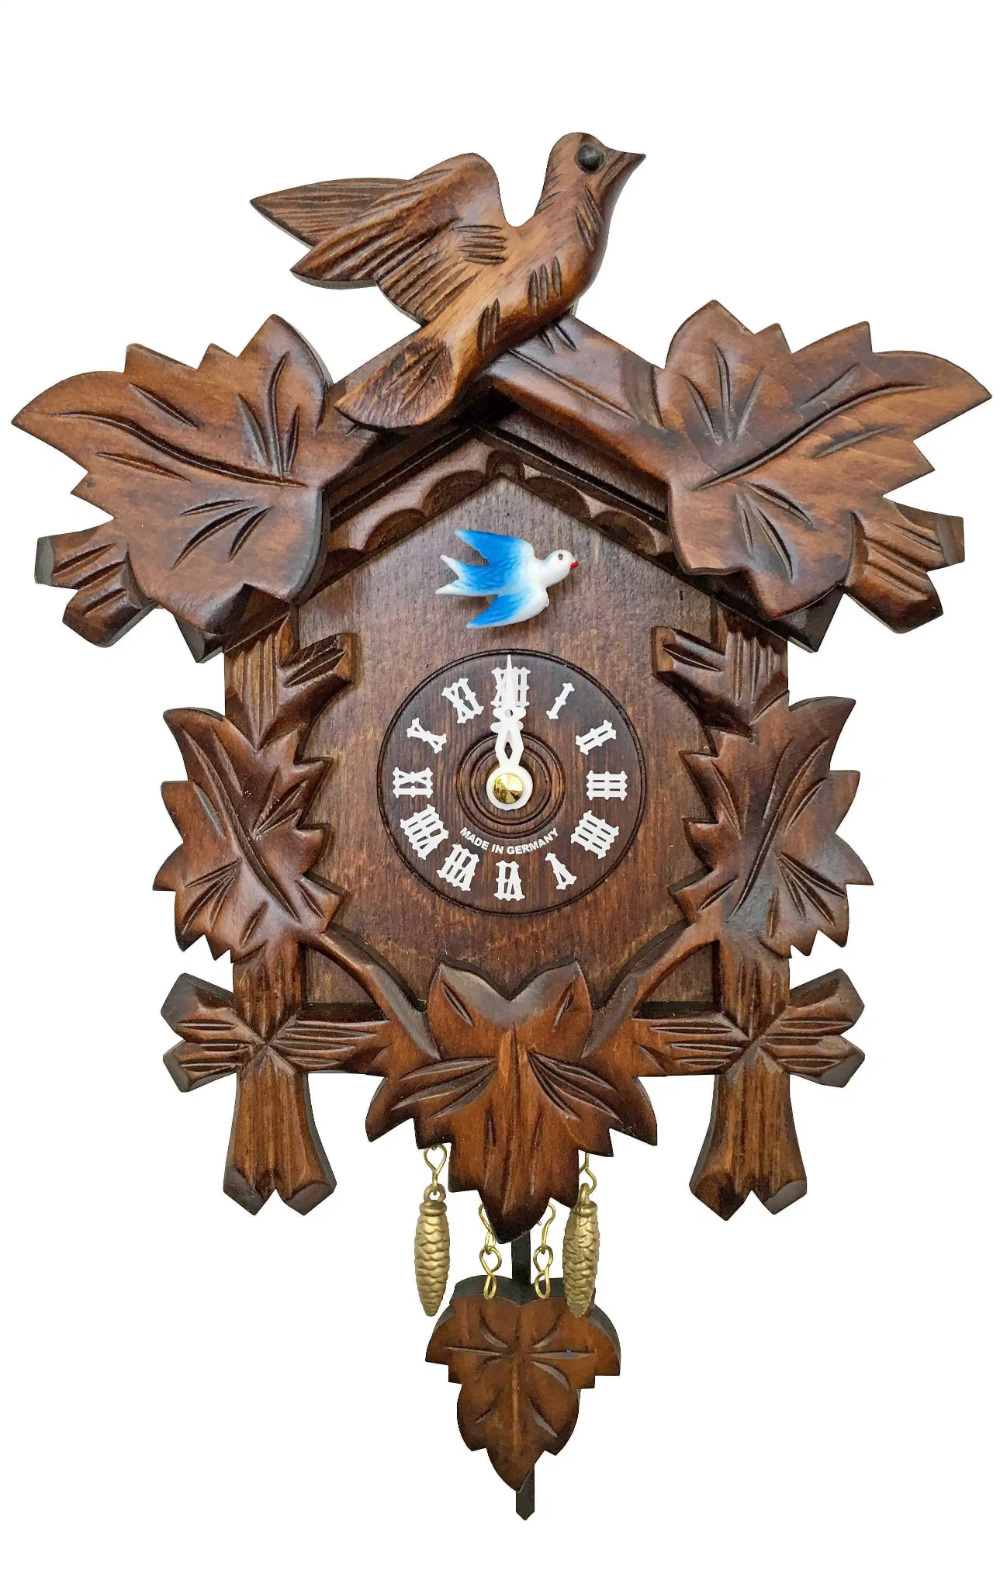 German Black Forest Cuckoo Clock With Music Chimes German Usa Cuckoo Clock Clock Wall Clock